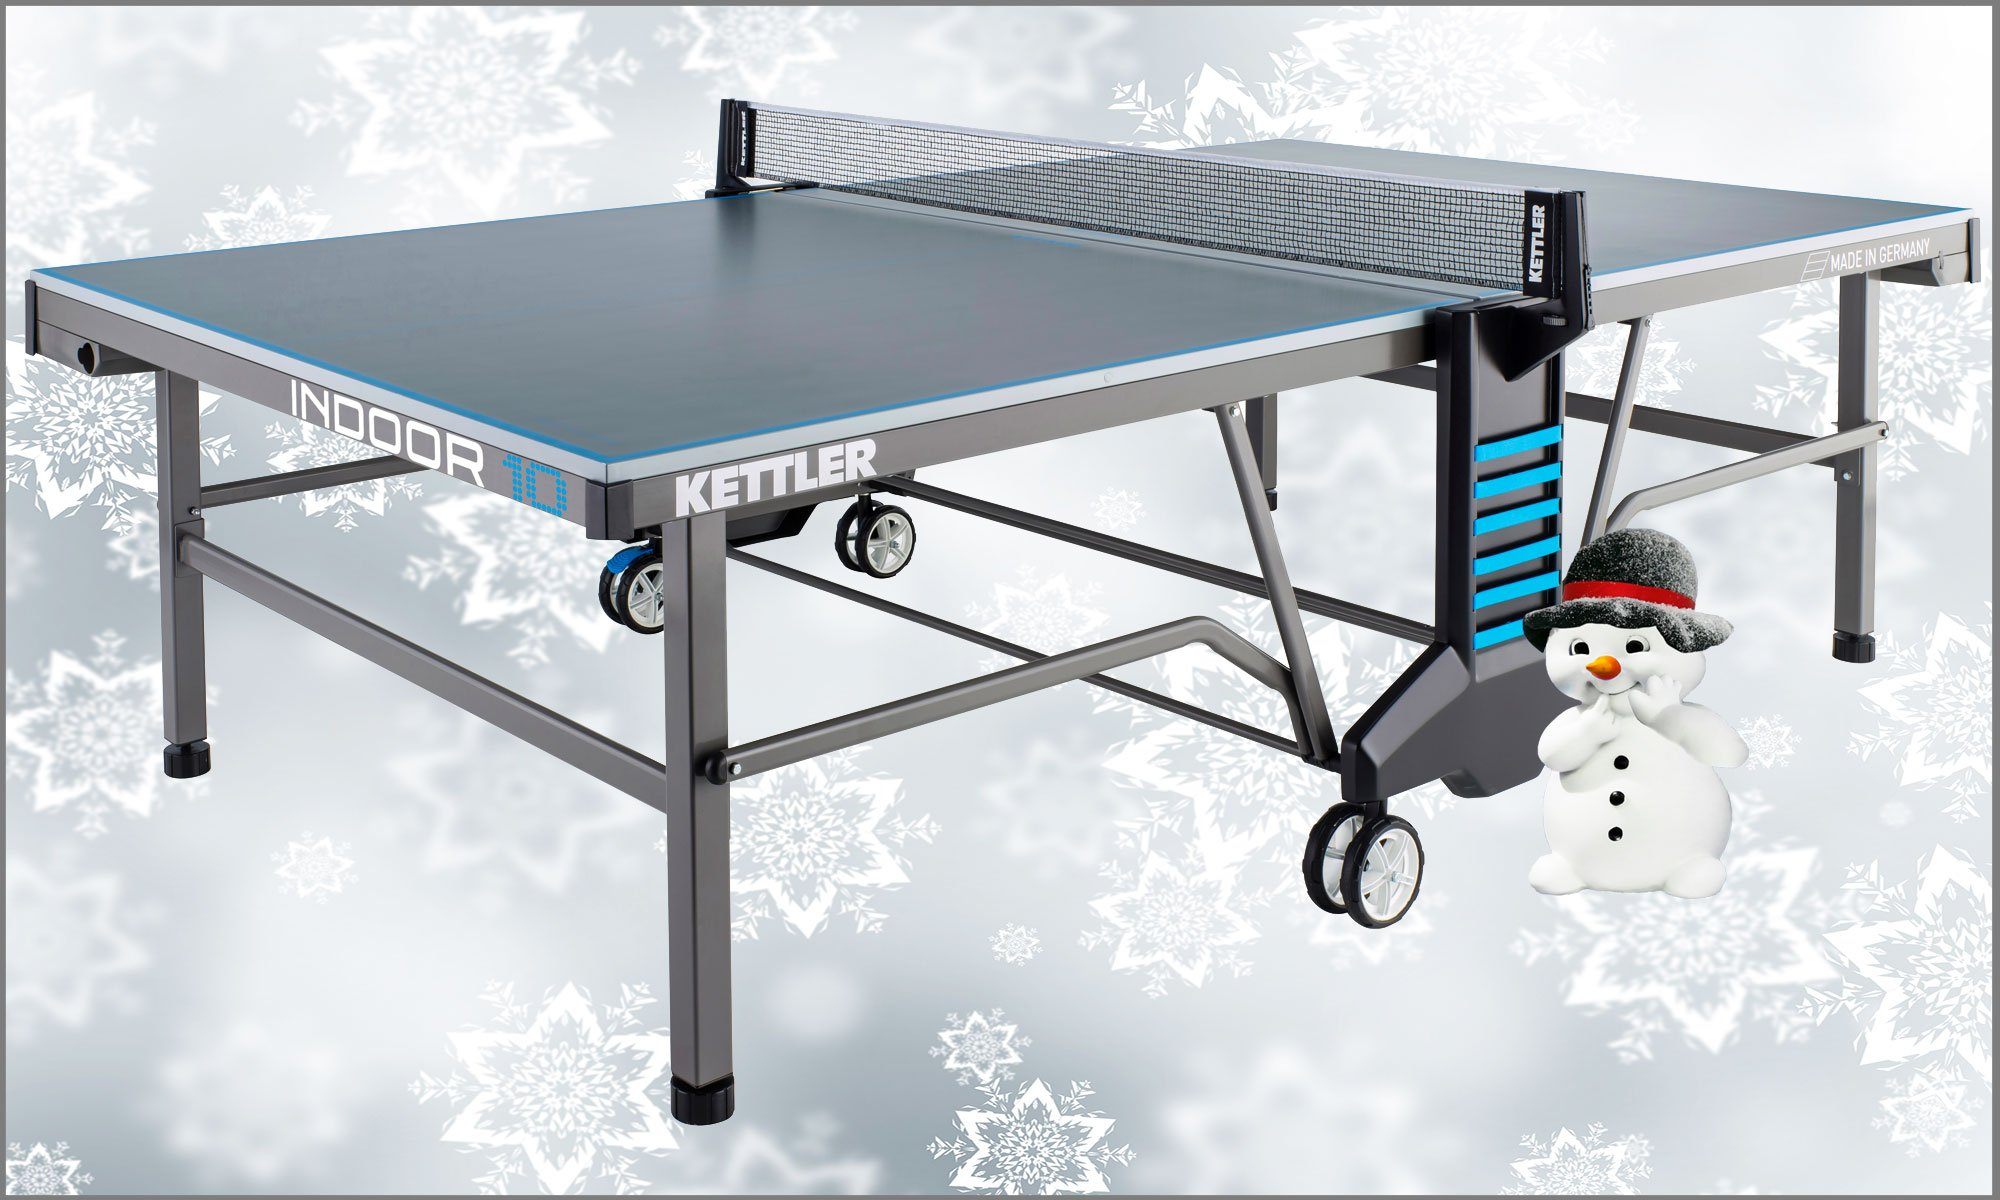 Kettler classic indoor 10 table tennis table grey for Table kettler